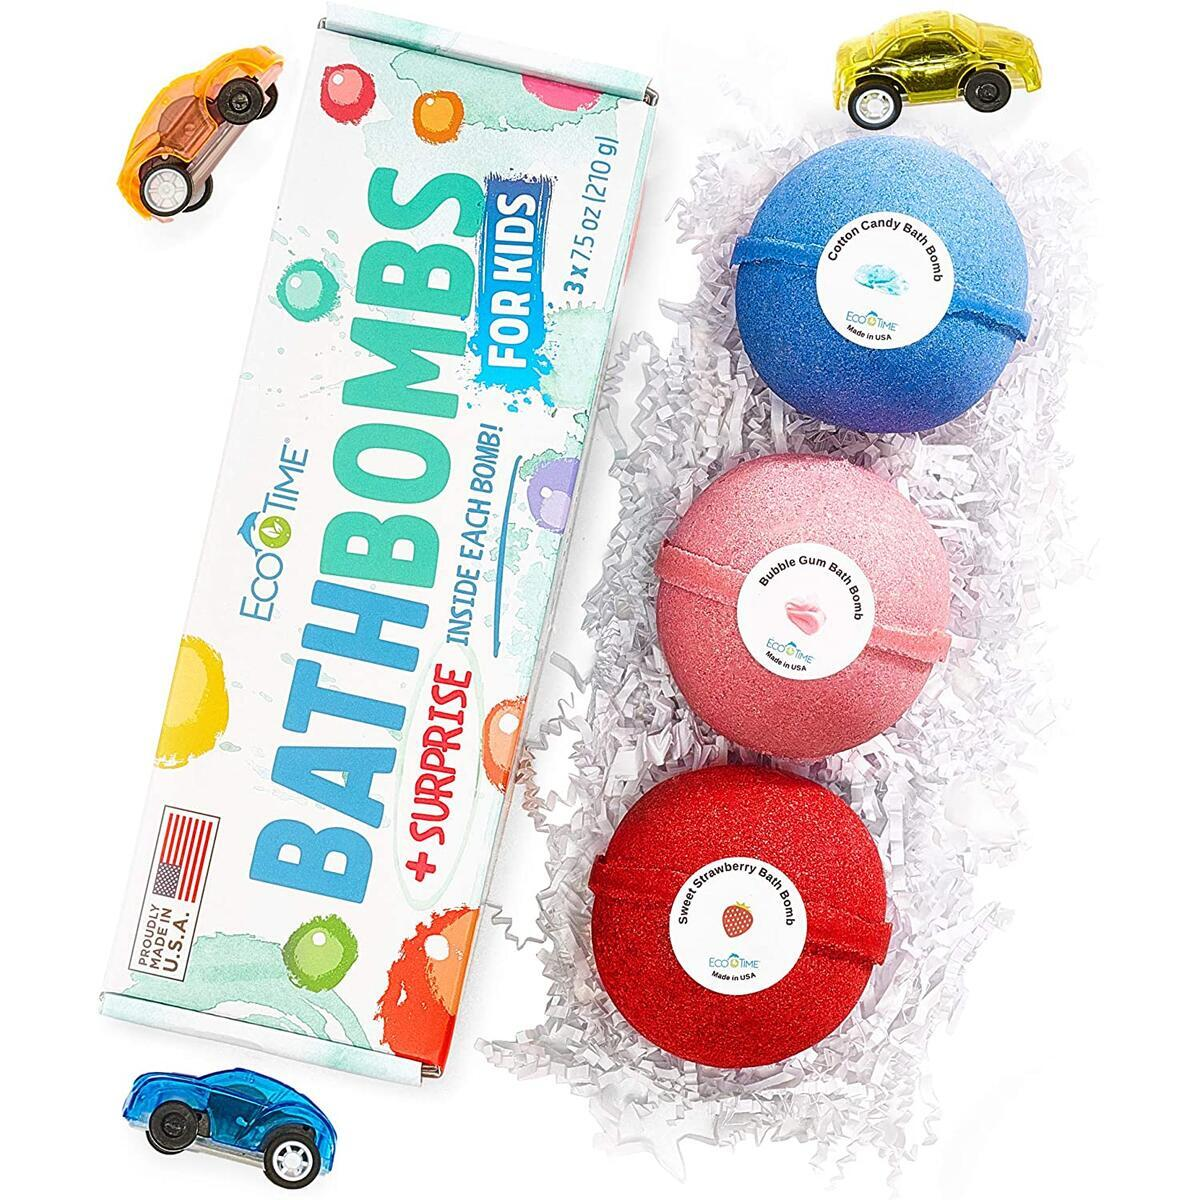 Bath Bombs for Kids with Surprise Toys CARS Inside - Bubble Fizzies with Essential Oils - Multicolored Kids Extra Large 3 Bath Bombs - Natural & Organic Ingredients Set for Boys and Girls Handmade USA